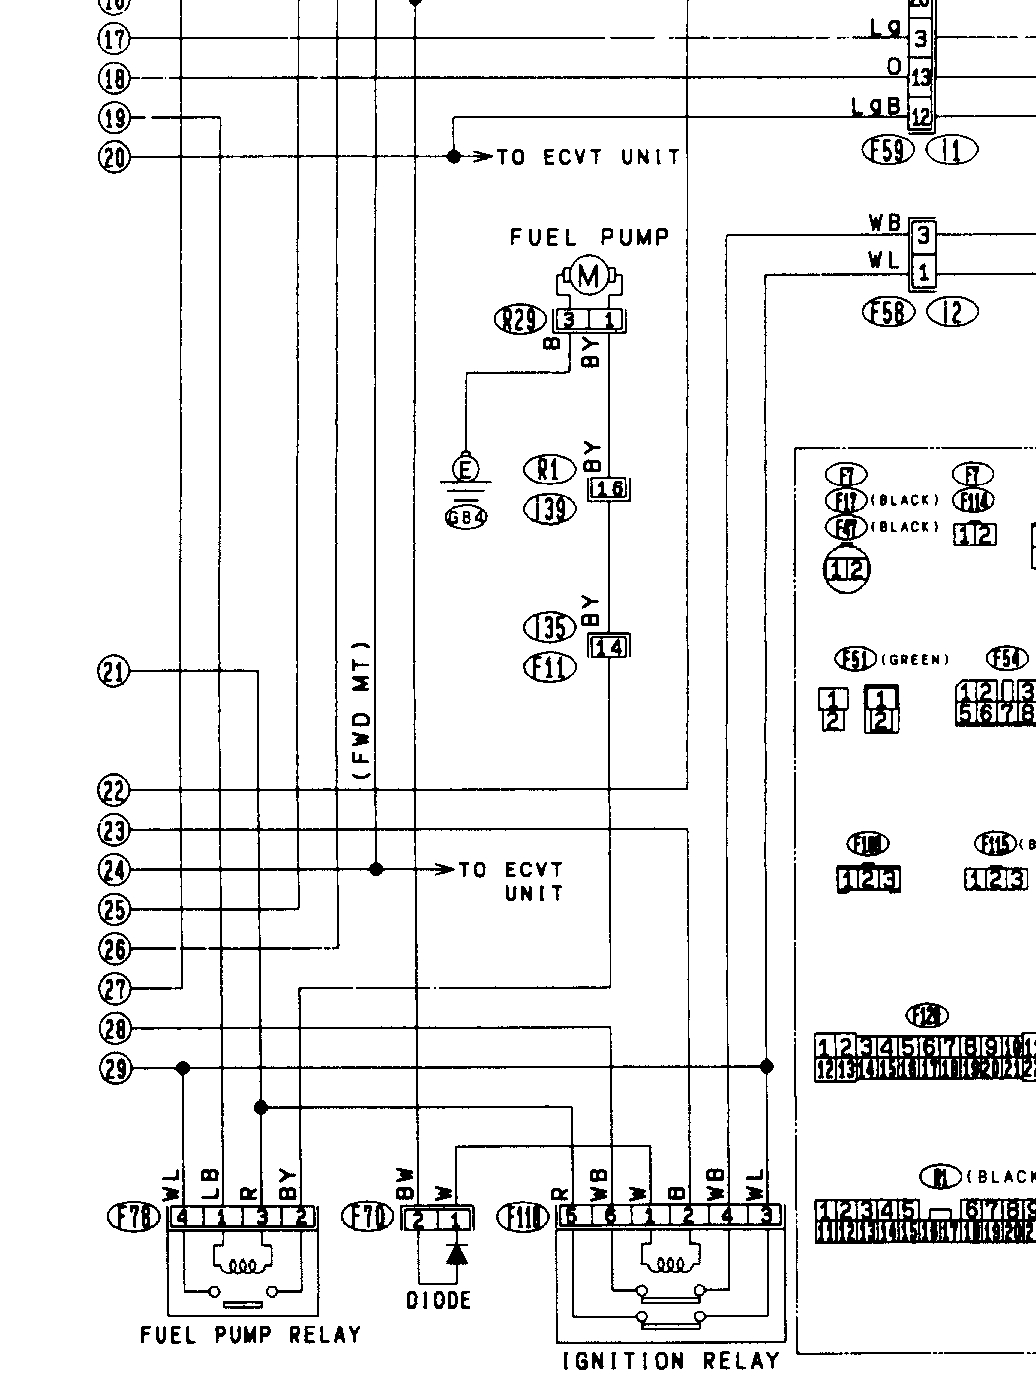 hight resolution of click to see a full size view here is the partial wiring diagram of the subaru s